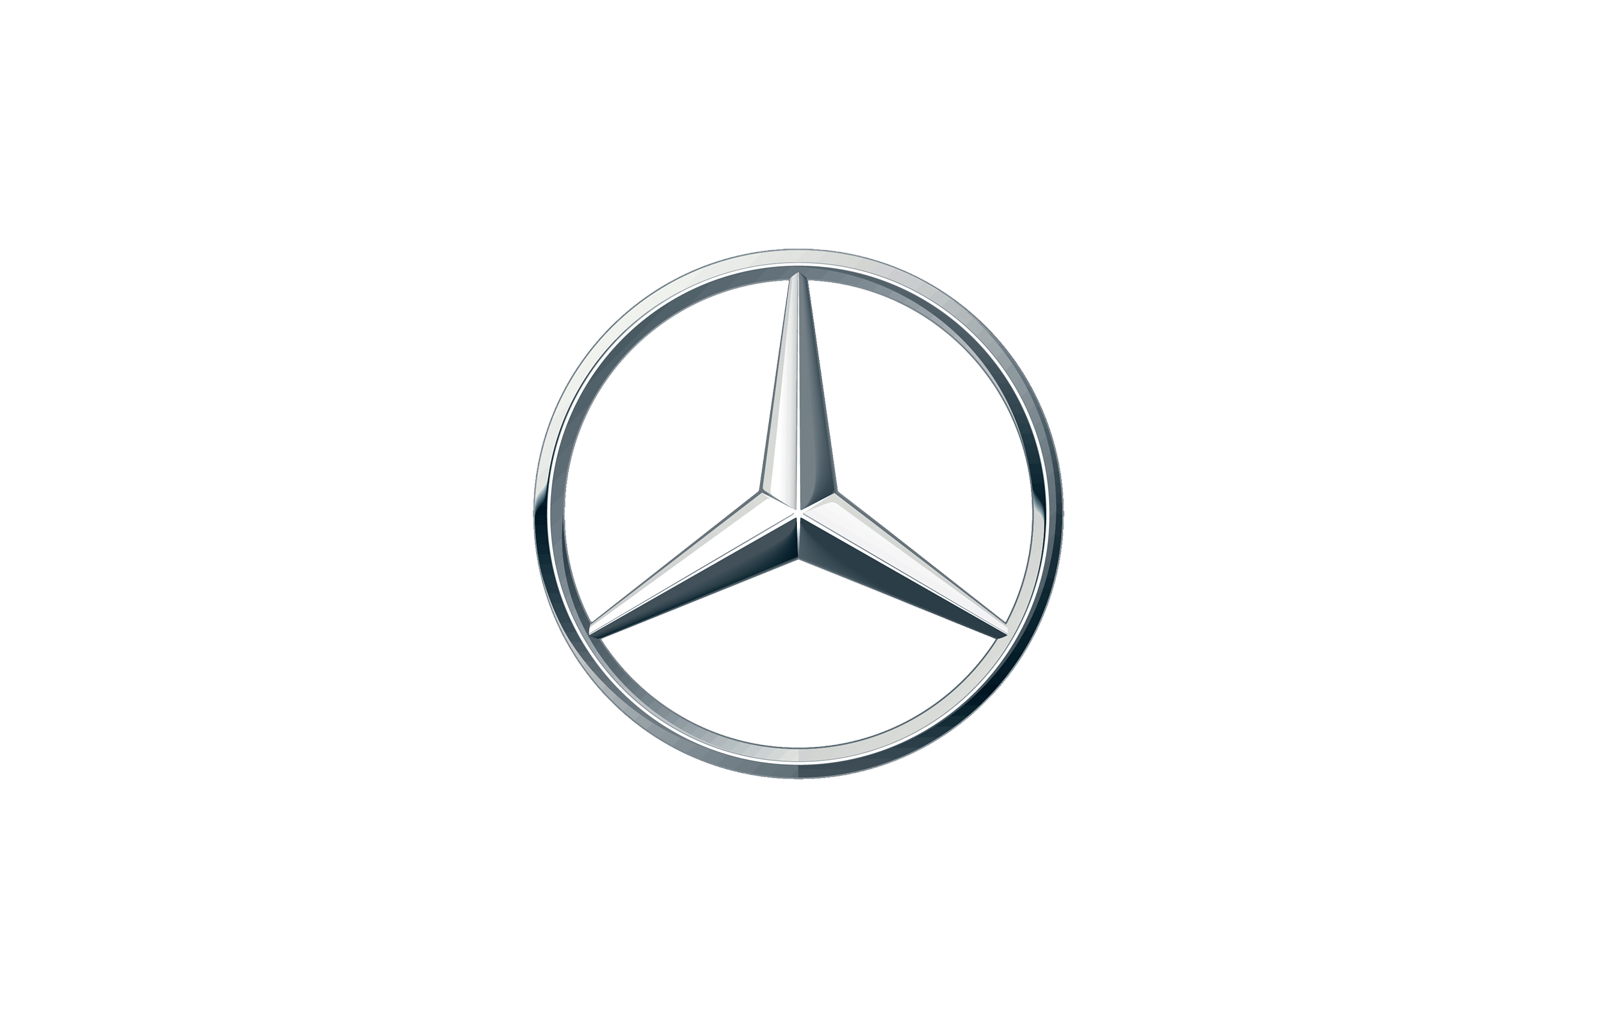 1600x1024 Image For Mercedes Benz Logo Vector Free Download Projects To